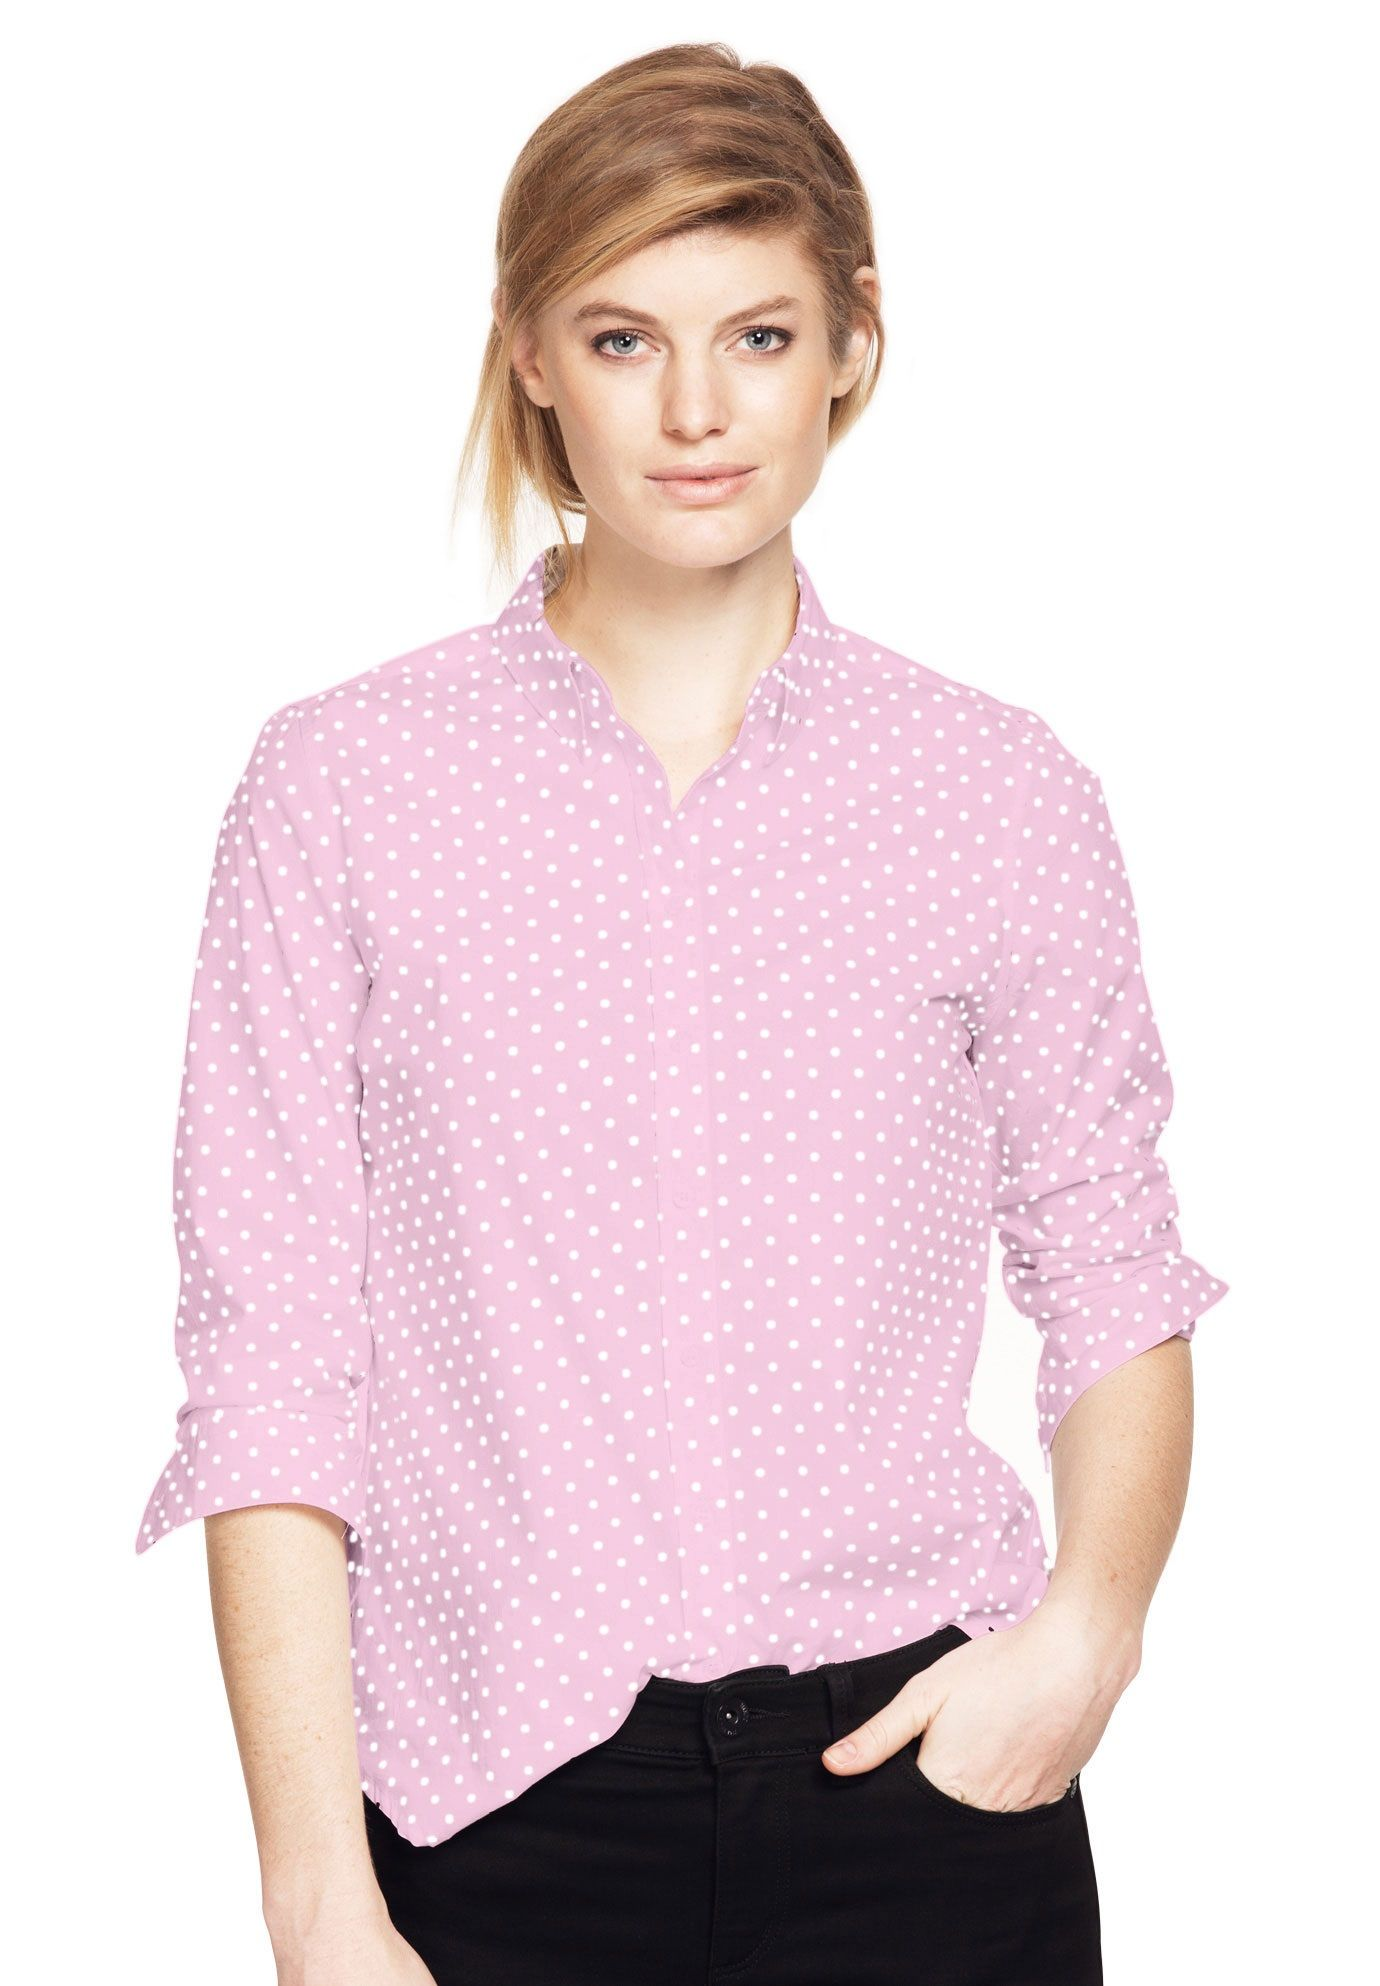 b6fd1035 Emma Button-Down Shirt by ellos - Women's Plus Size Clothing | Products |  Pinterest | Button down shirt, Plus size and Button downs